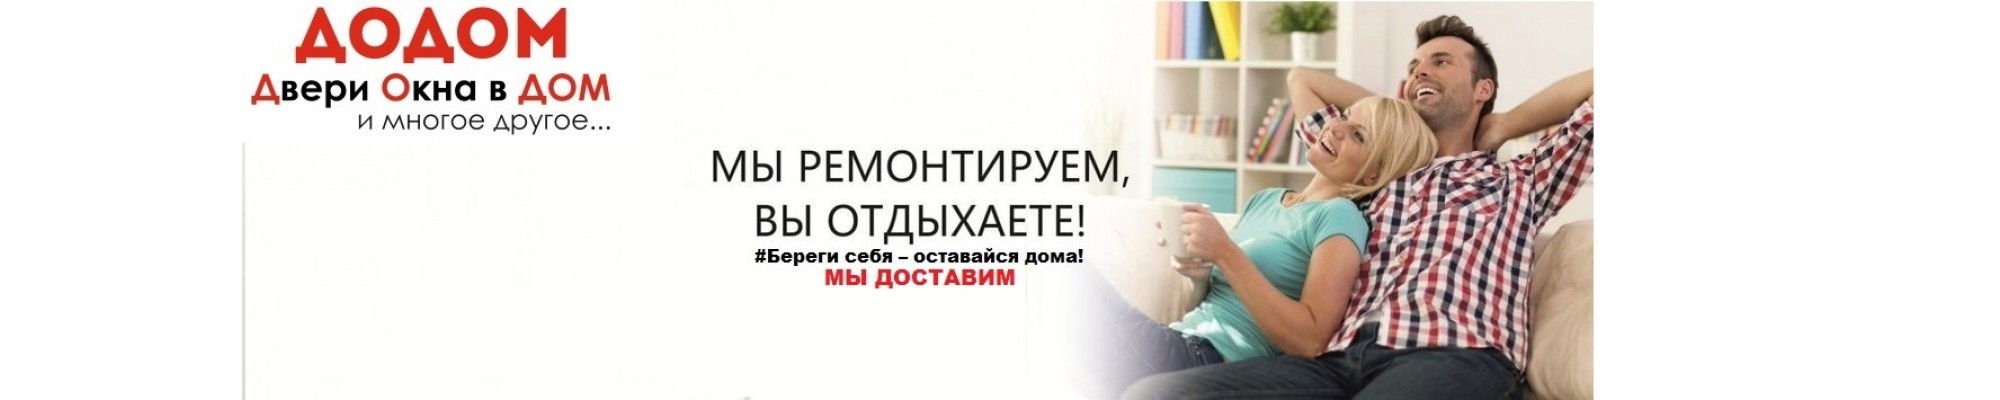 Home Page Slideshow 5н6н6н